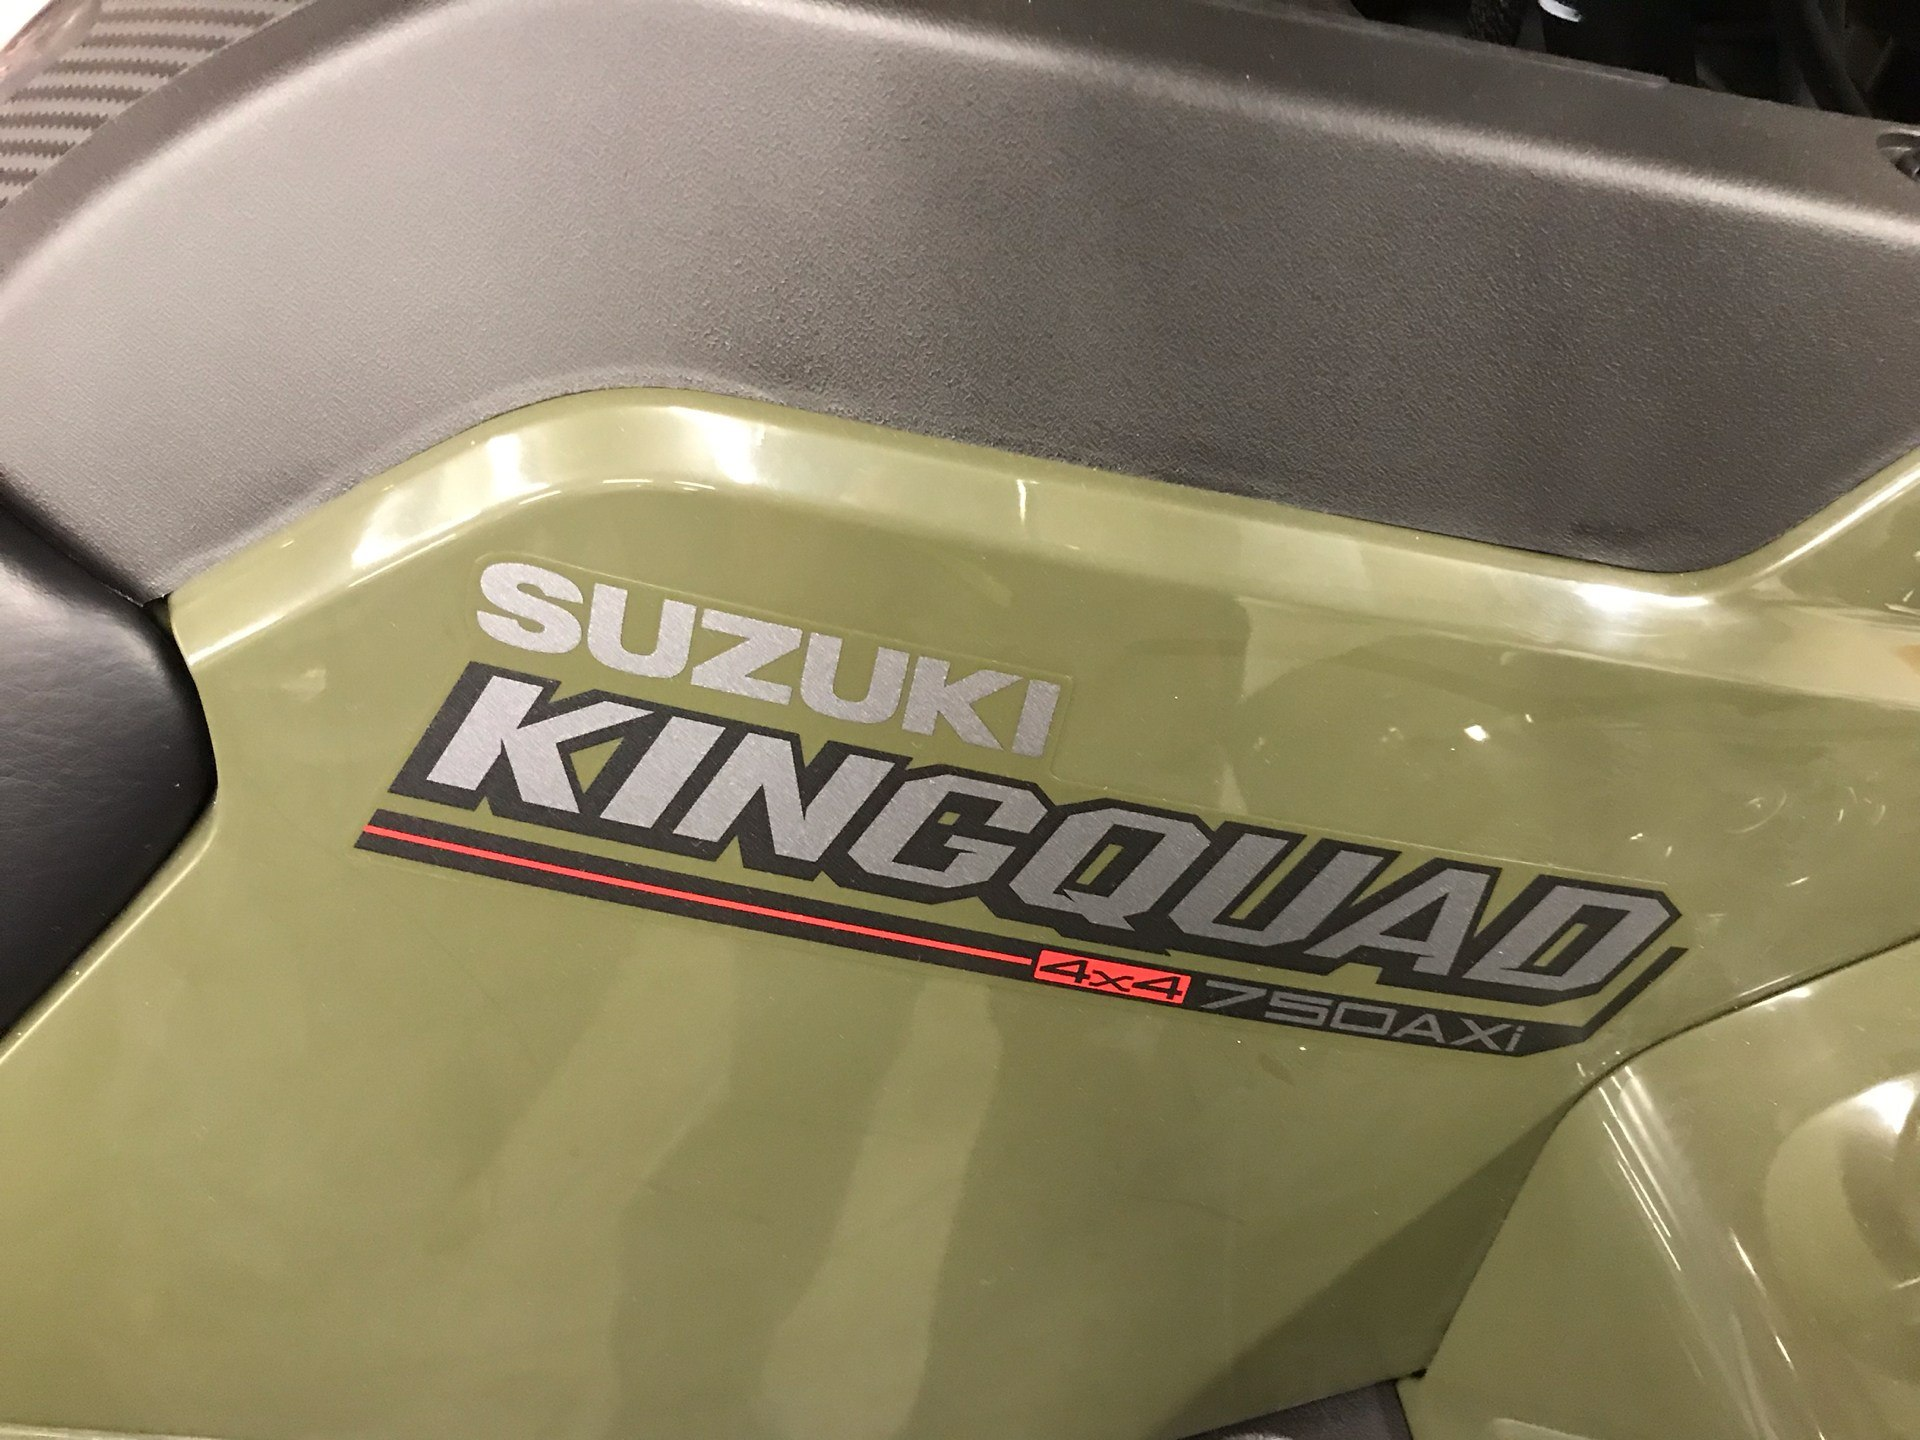 2019 Suzuki KingQuad 750AXi in Sanford, North Carolina - Photo 11